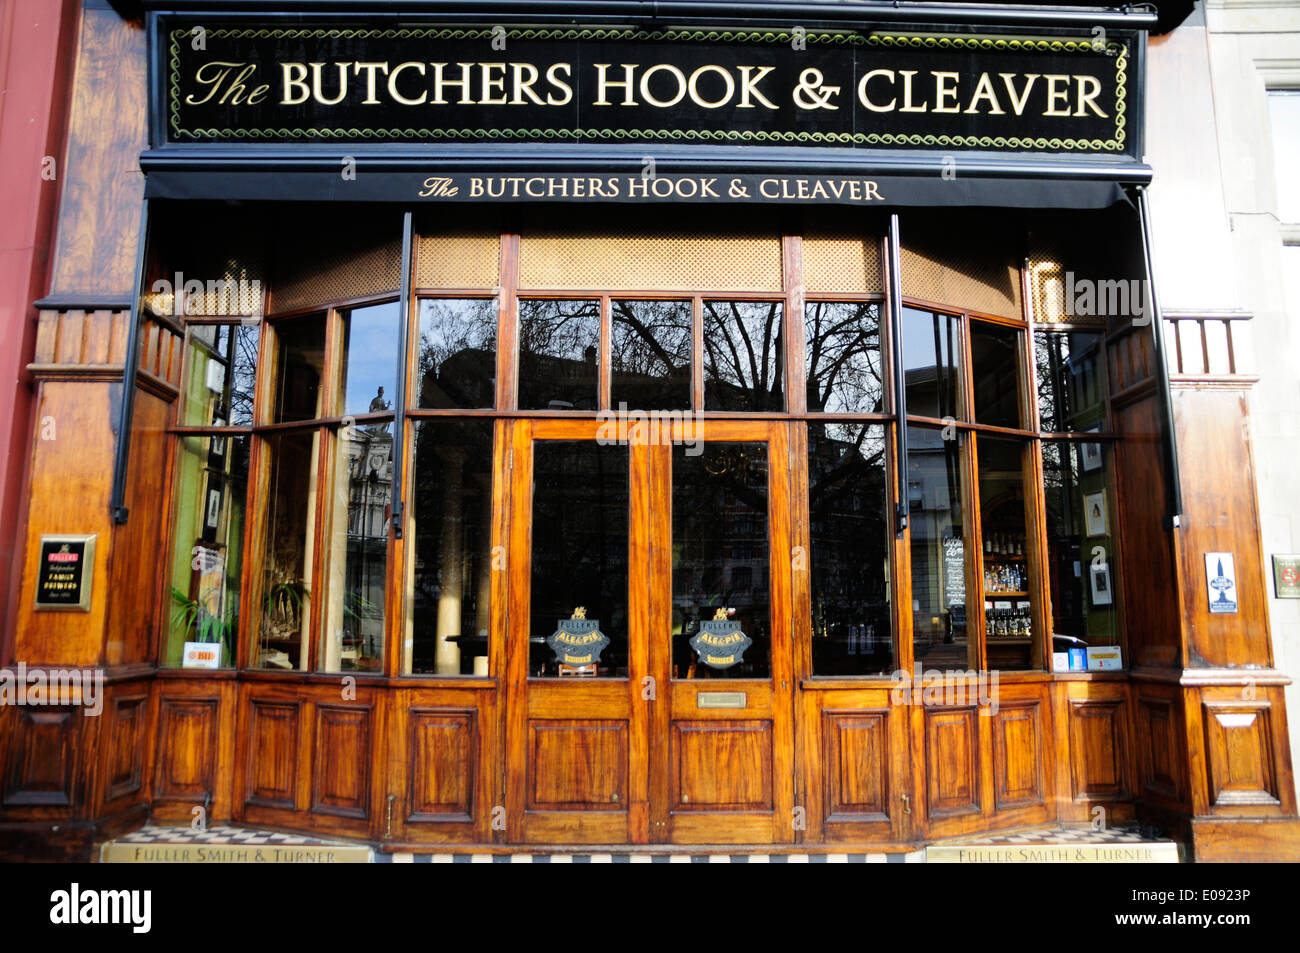 The Butchers Hook & Cleaver pub, Smithfield, London, England - Stock Image